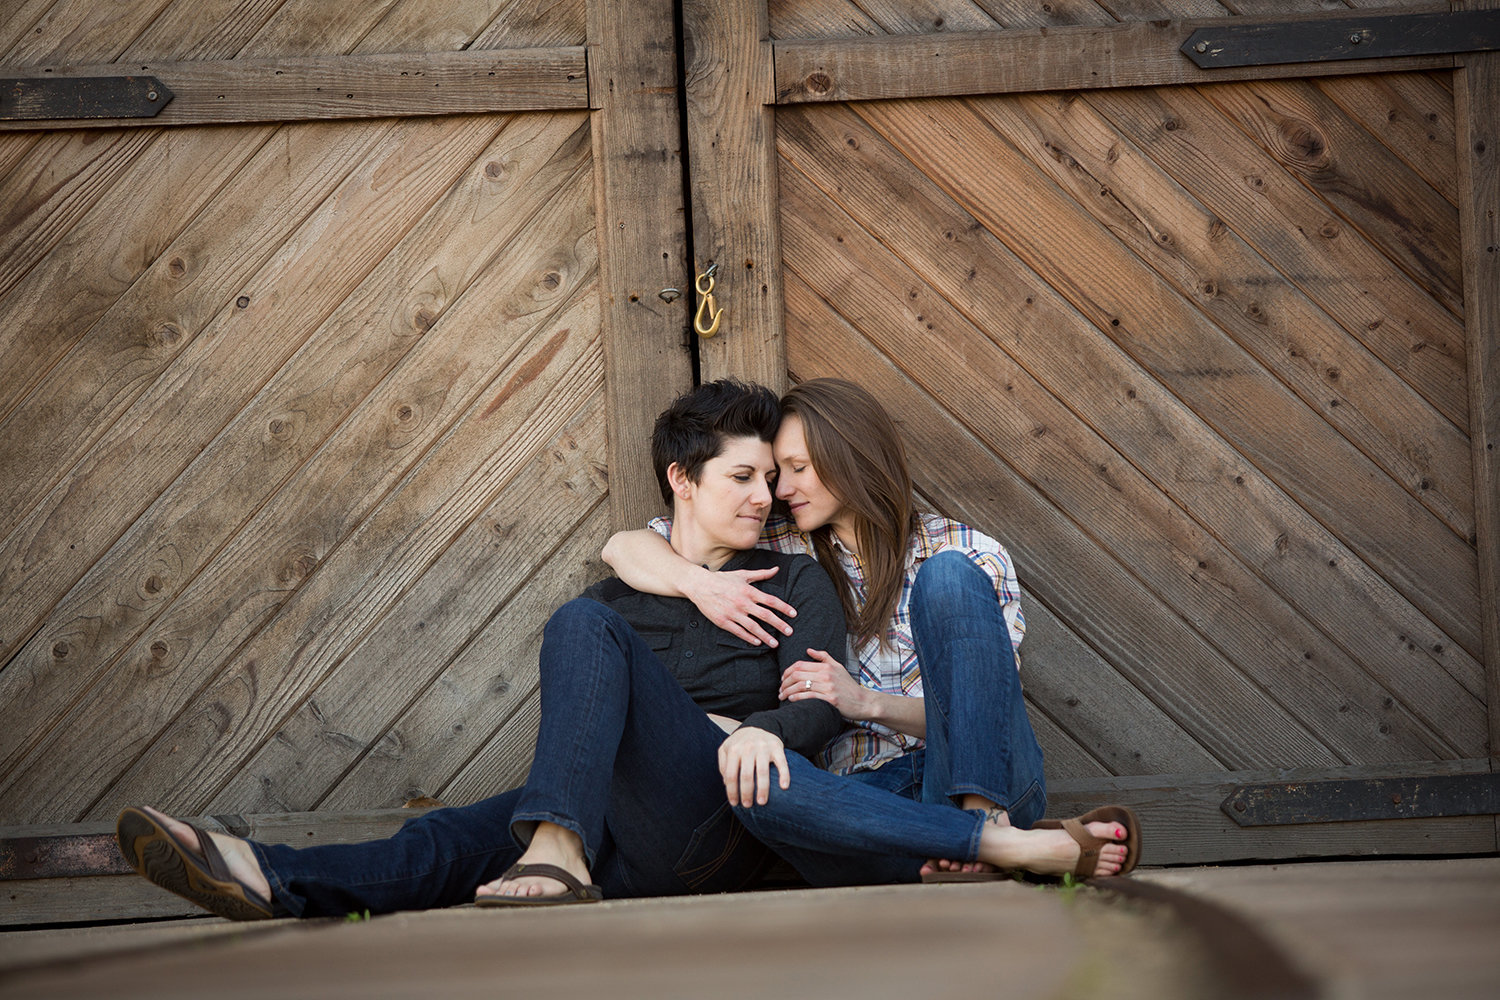 Lesbian engagement session in front of barn door